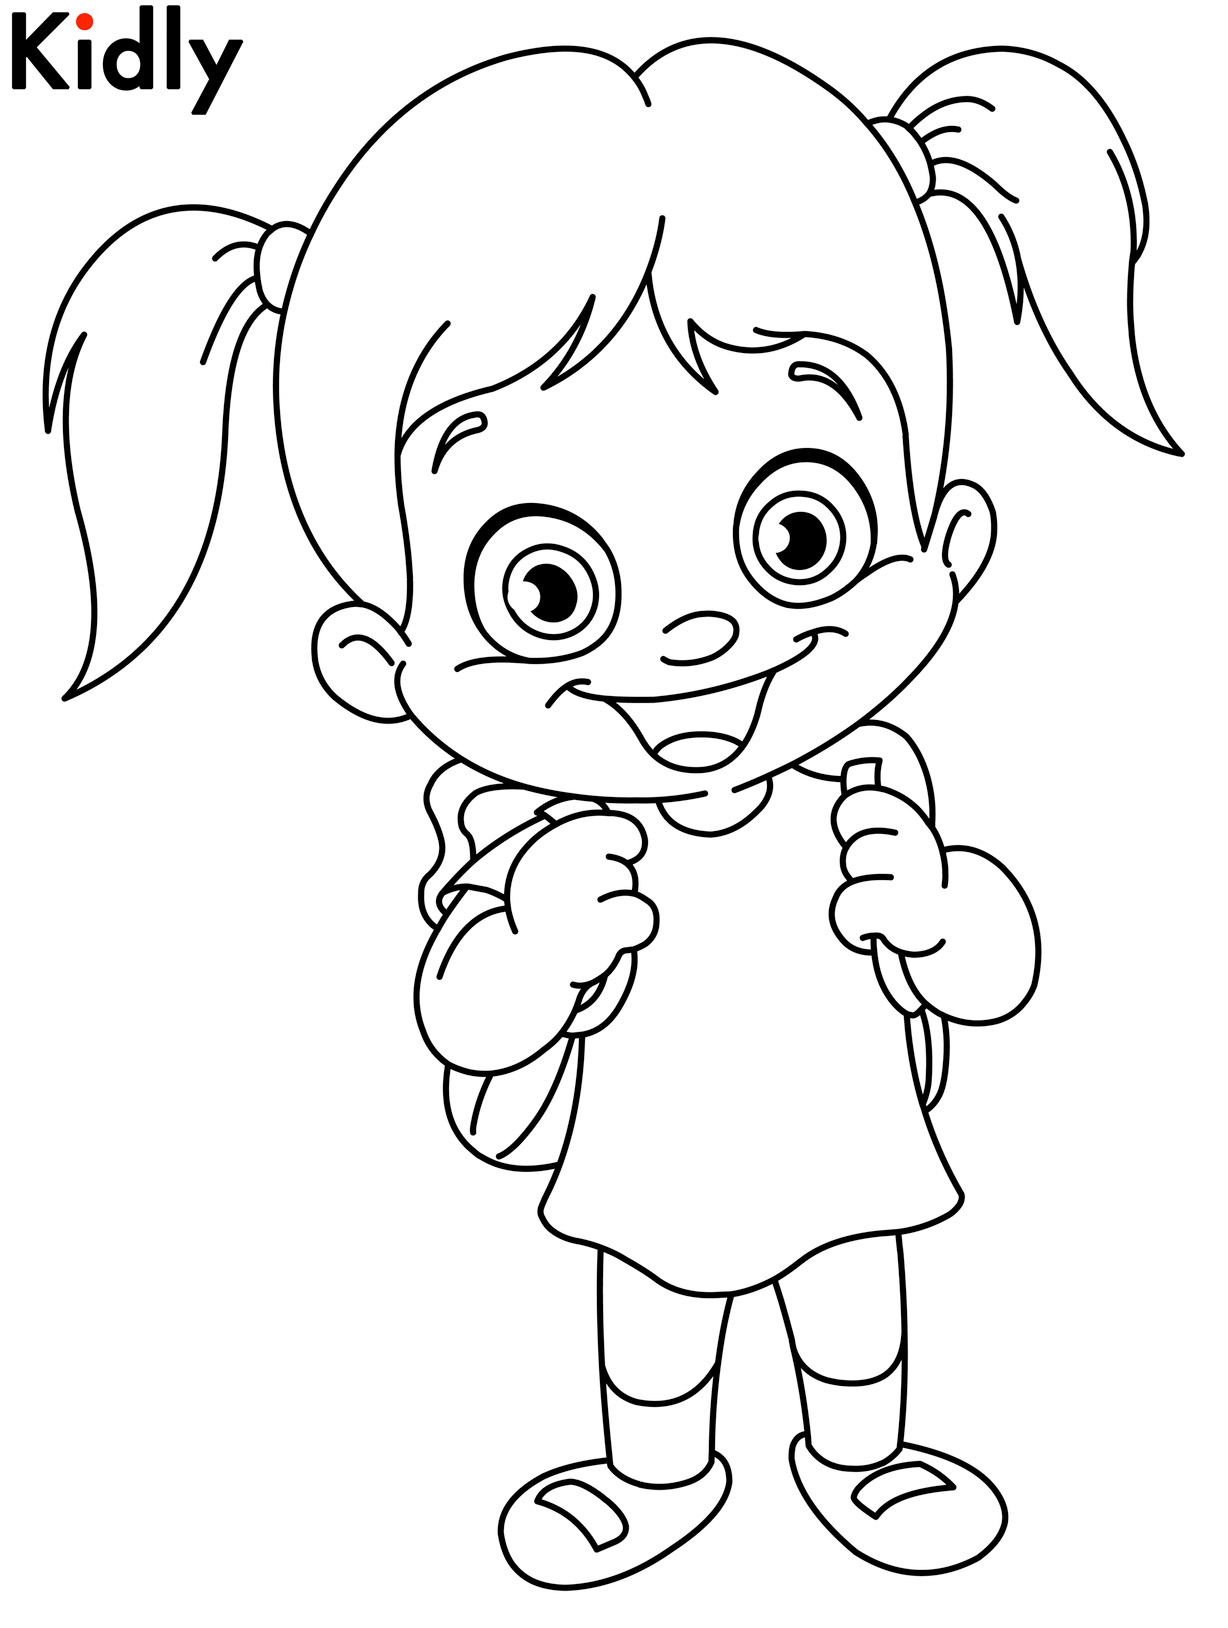 Childrens Day Coloring Pages | Coloring Kids